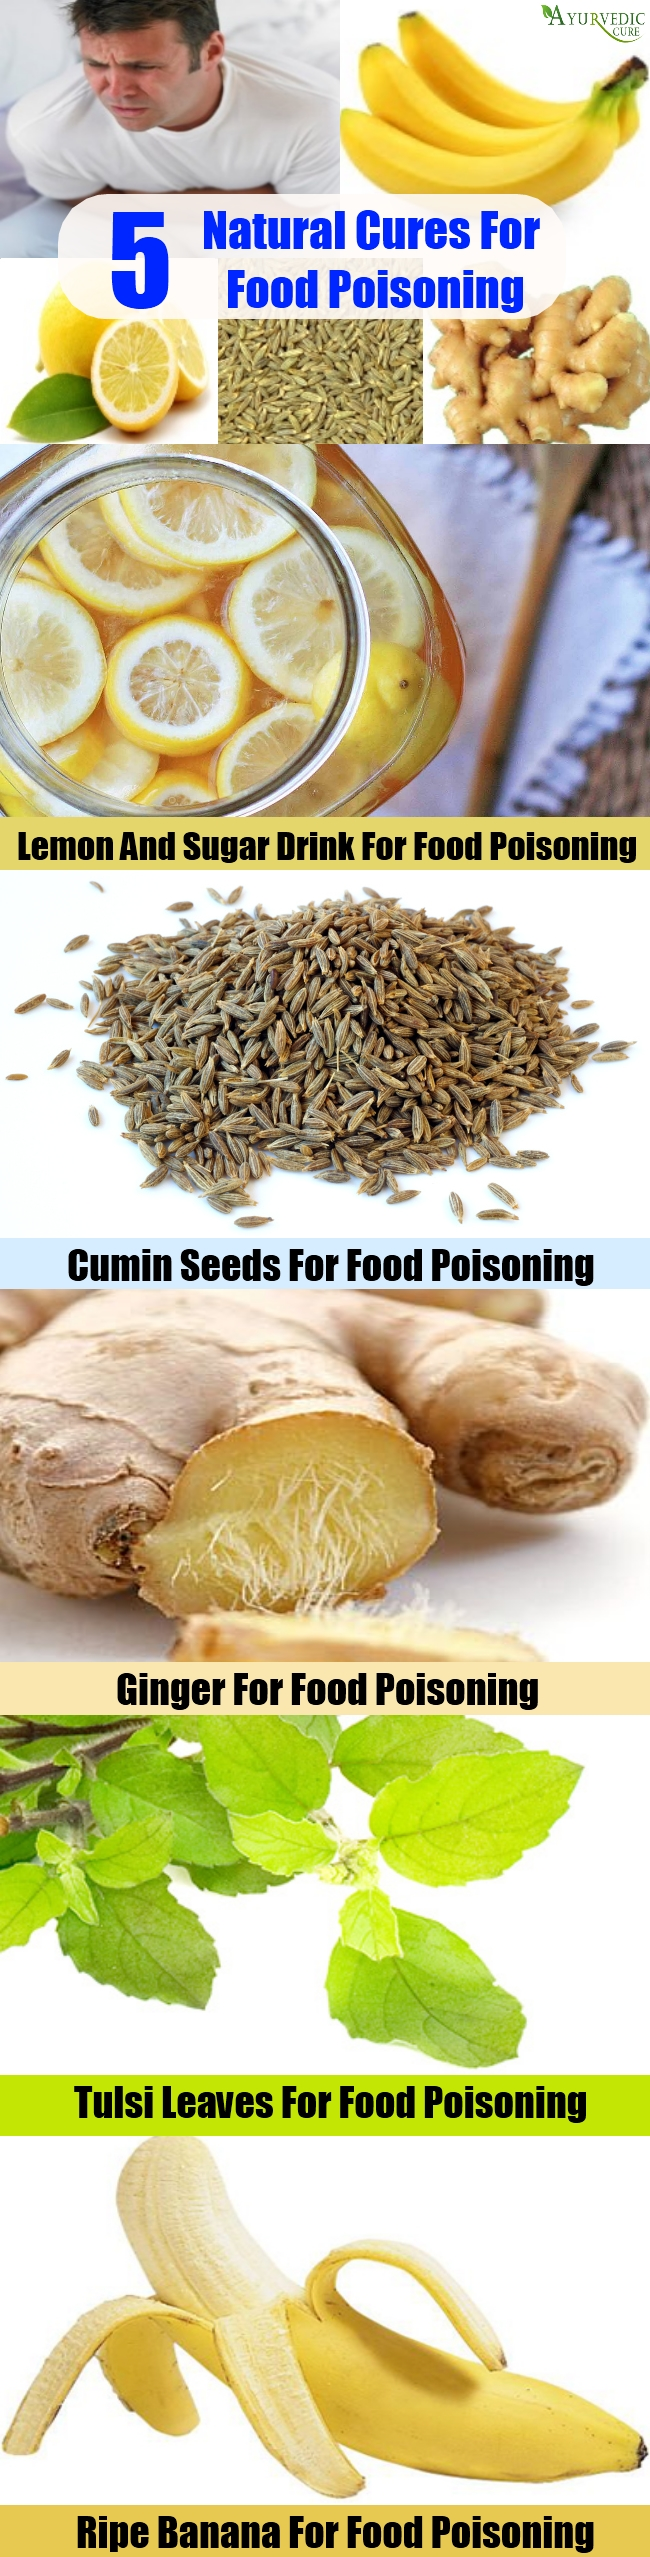 5 Natural Cures For Food Poisoning